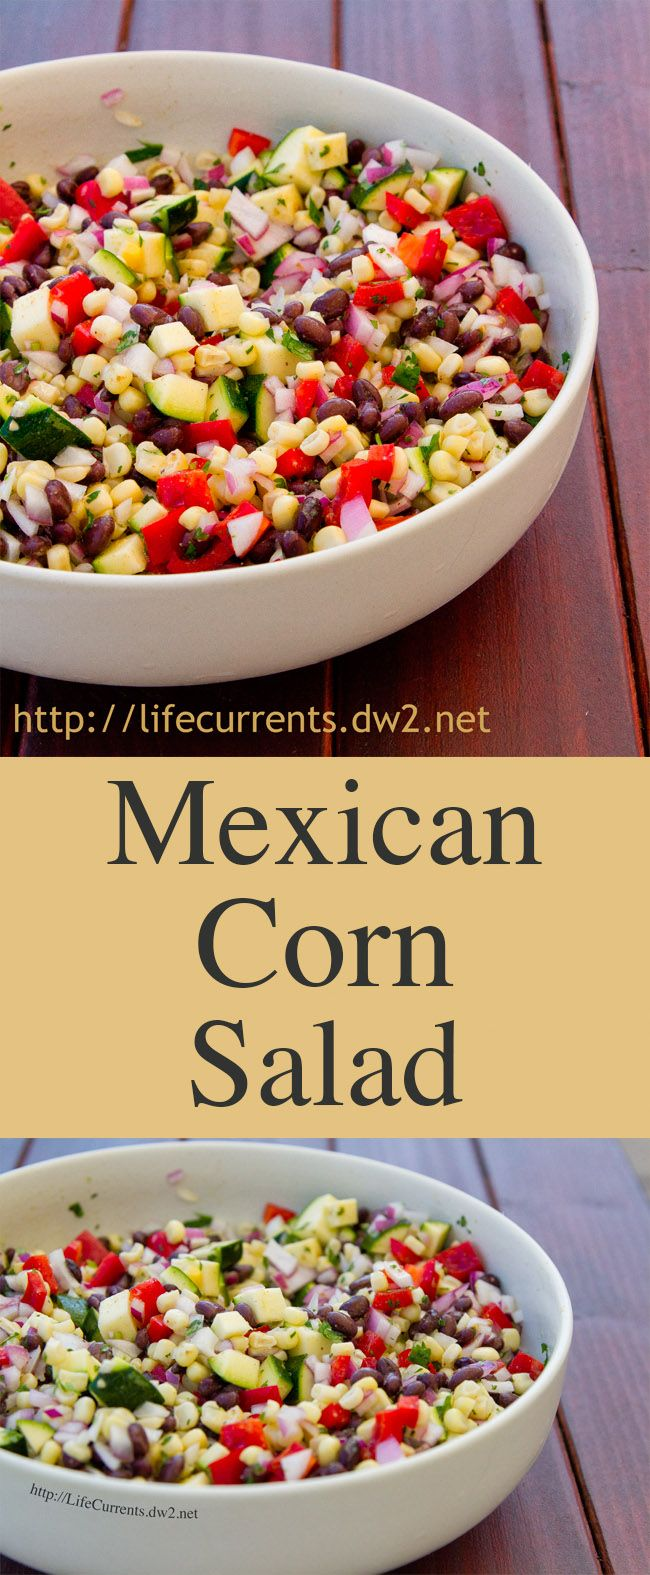 Mexican Corn Salad Is A Great Healthy Side Dish Or Even A Dip To